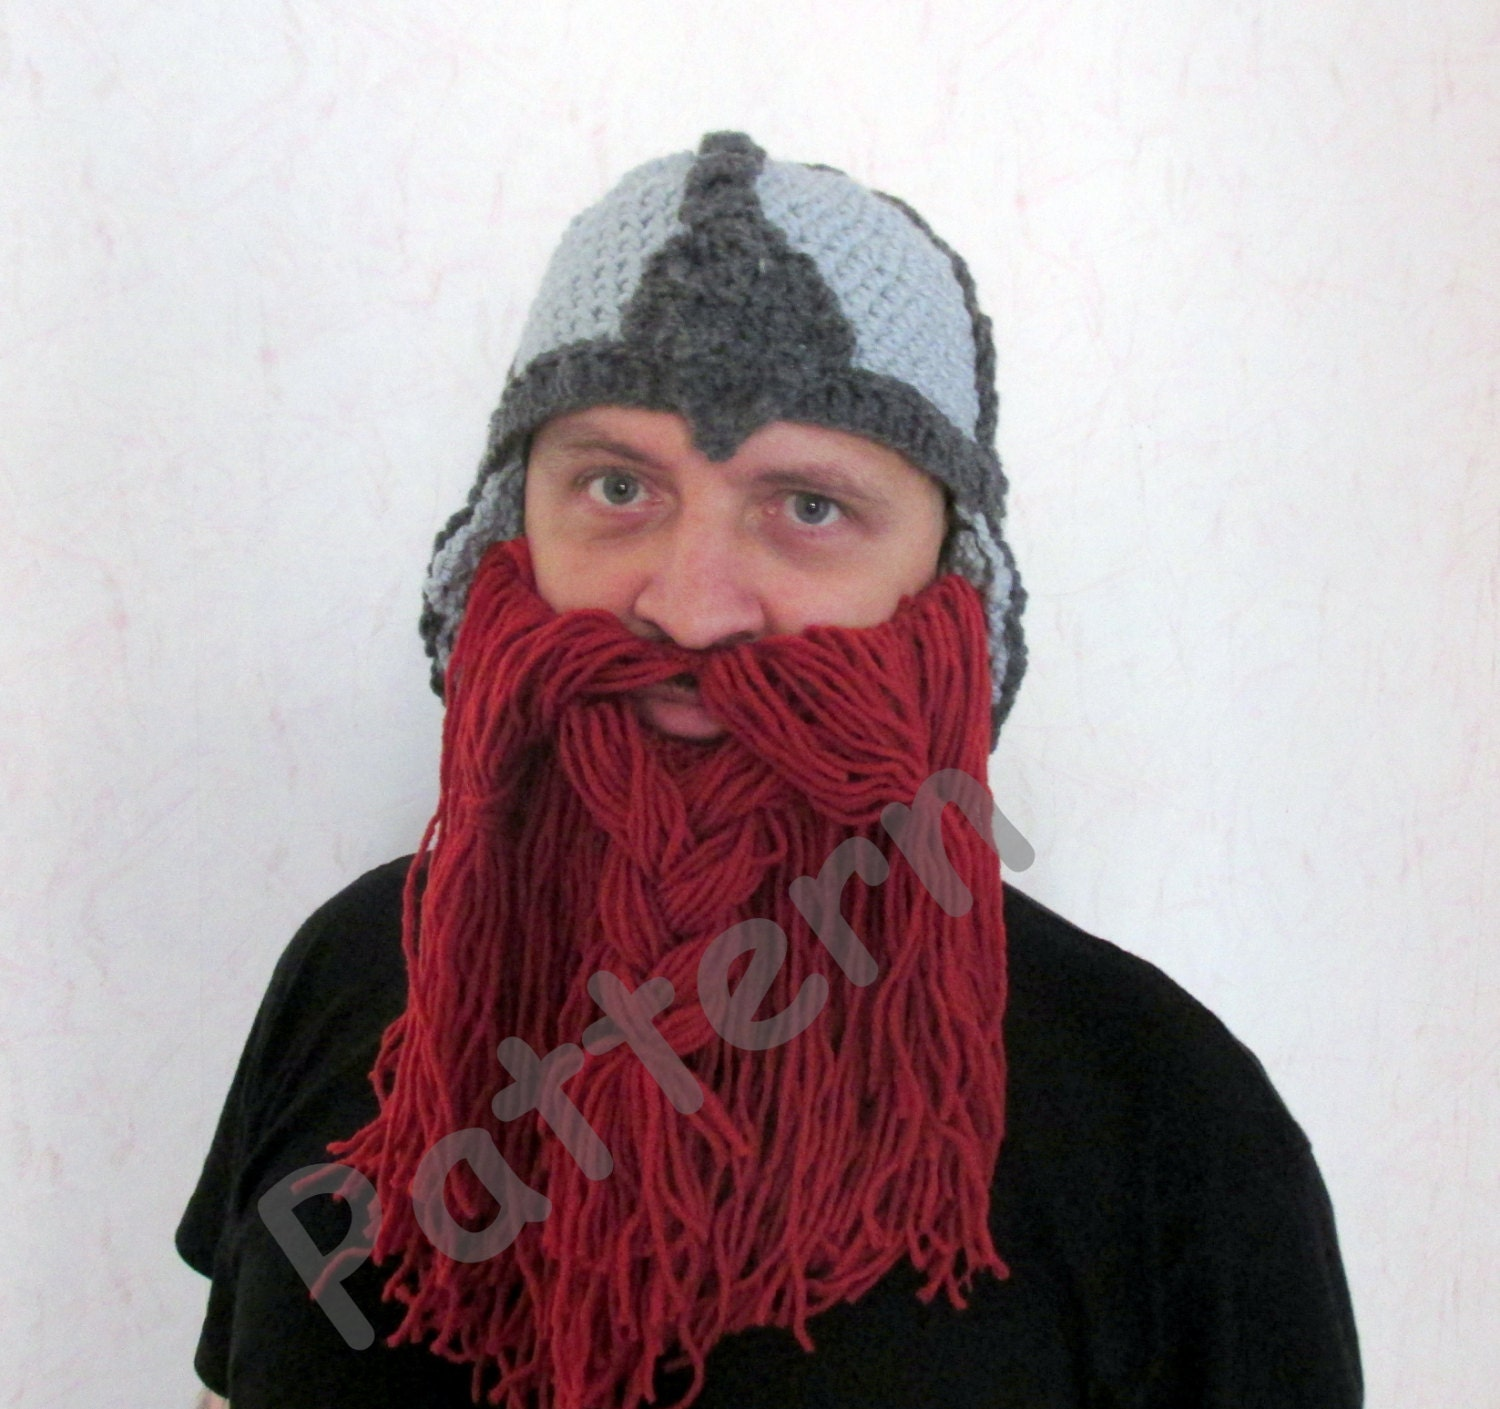 Crochet Viking hat pattern Crochet Beard hat Pattern adult  aacc332c1ee